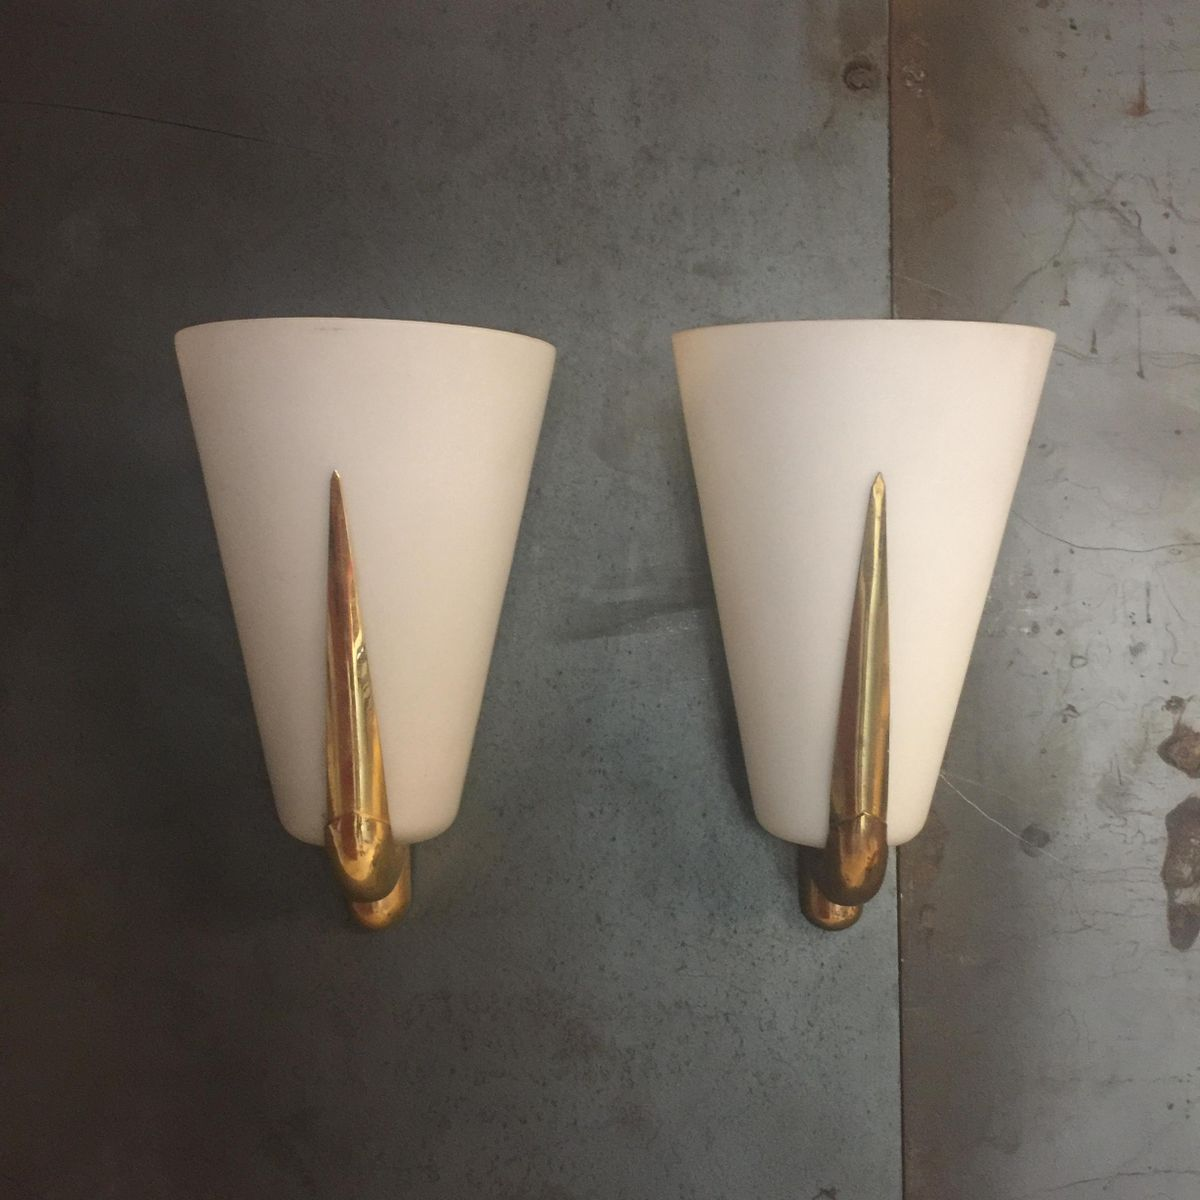 Italian Made Wall Sconces : Vintage Italian Wall Sconces, Set of 2 for sale at Pamono